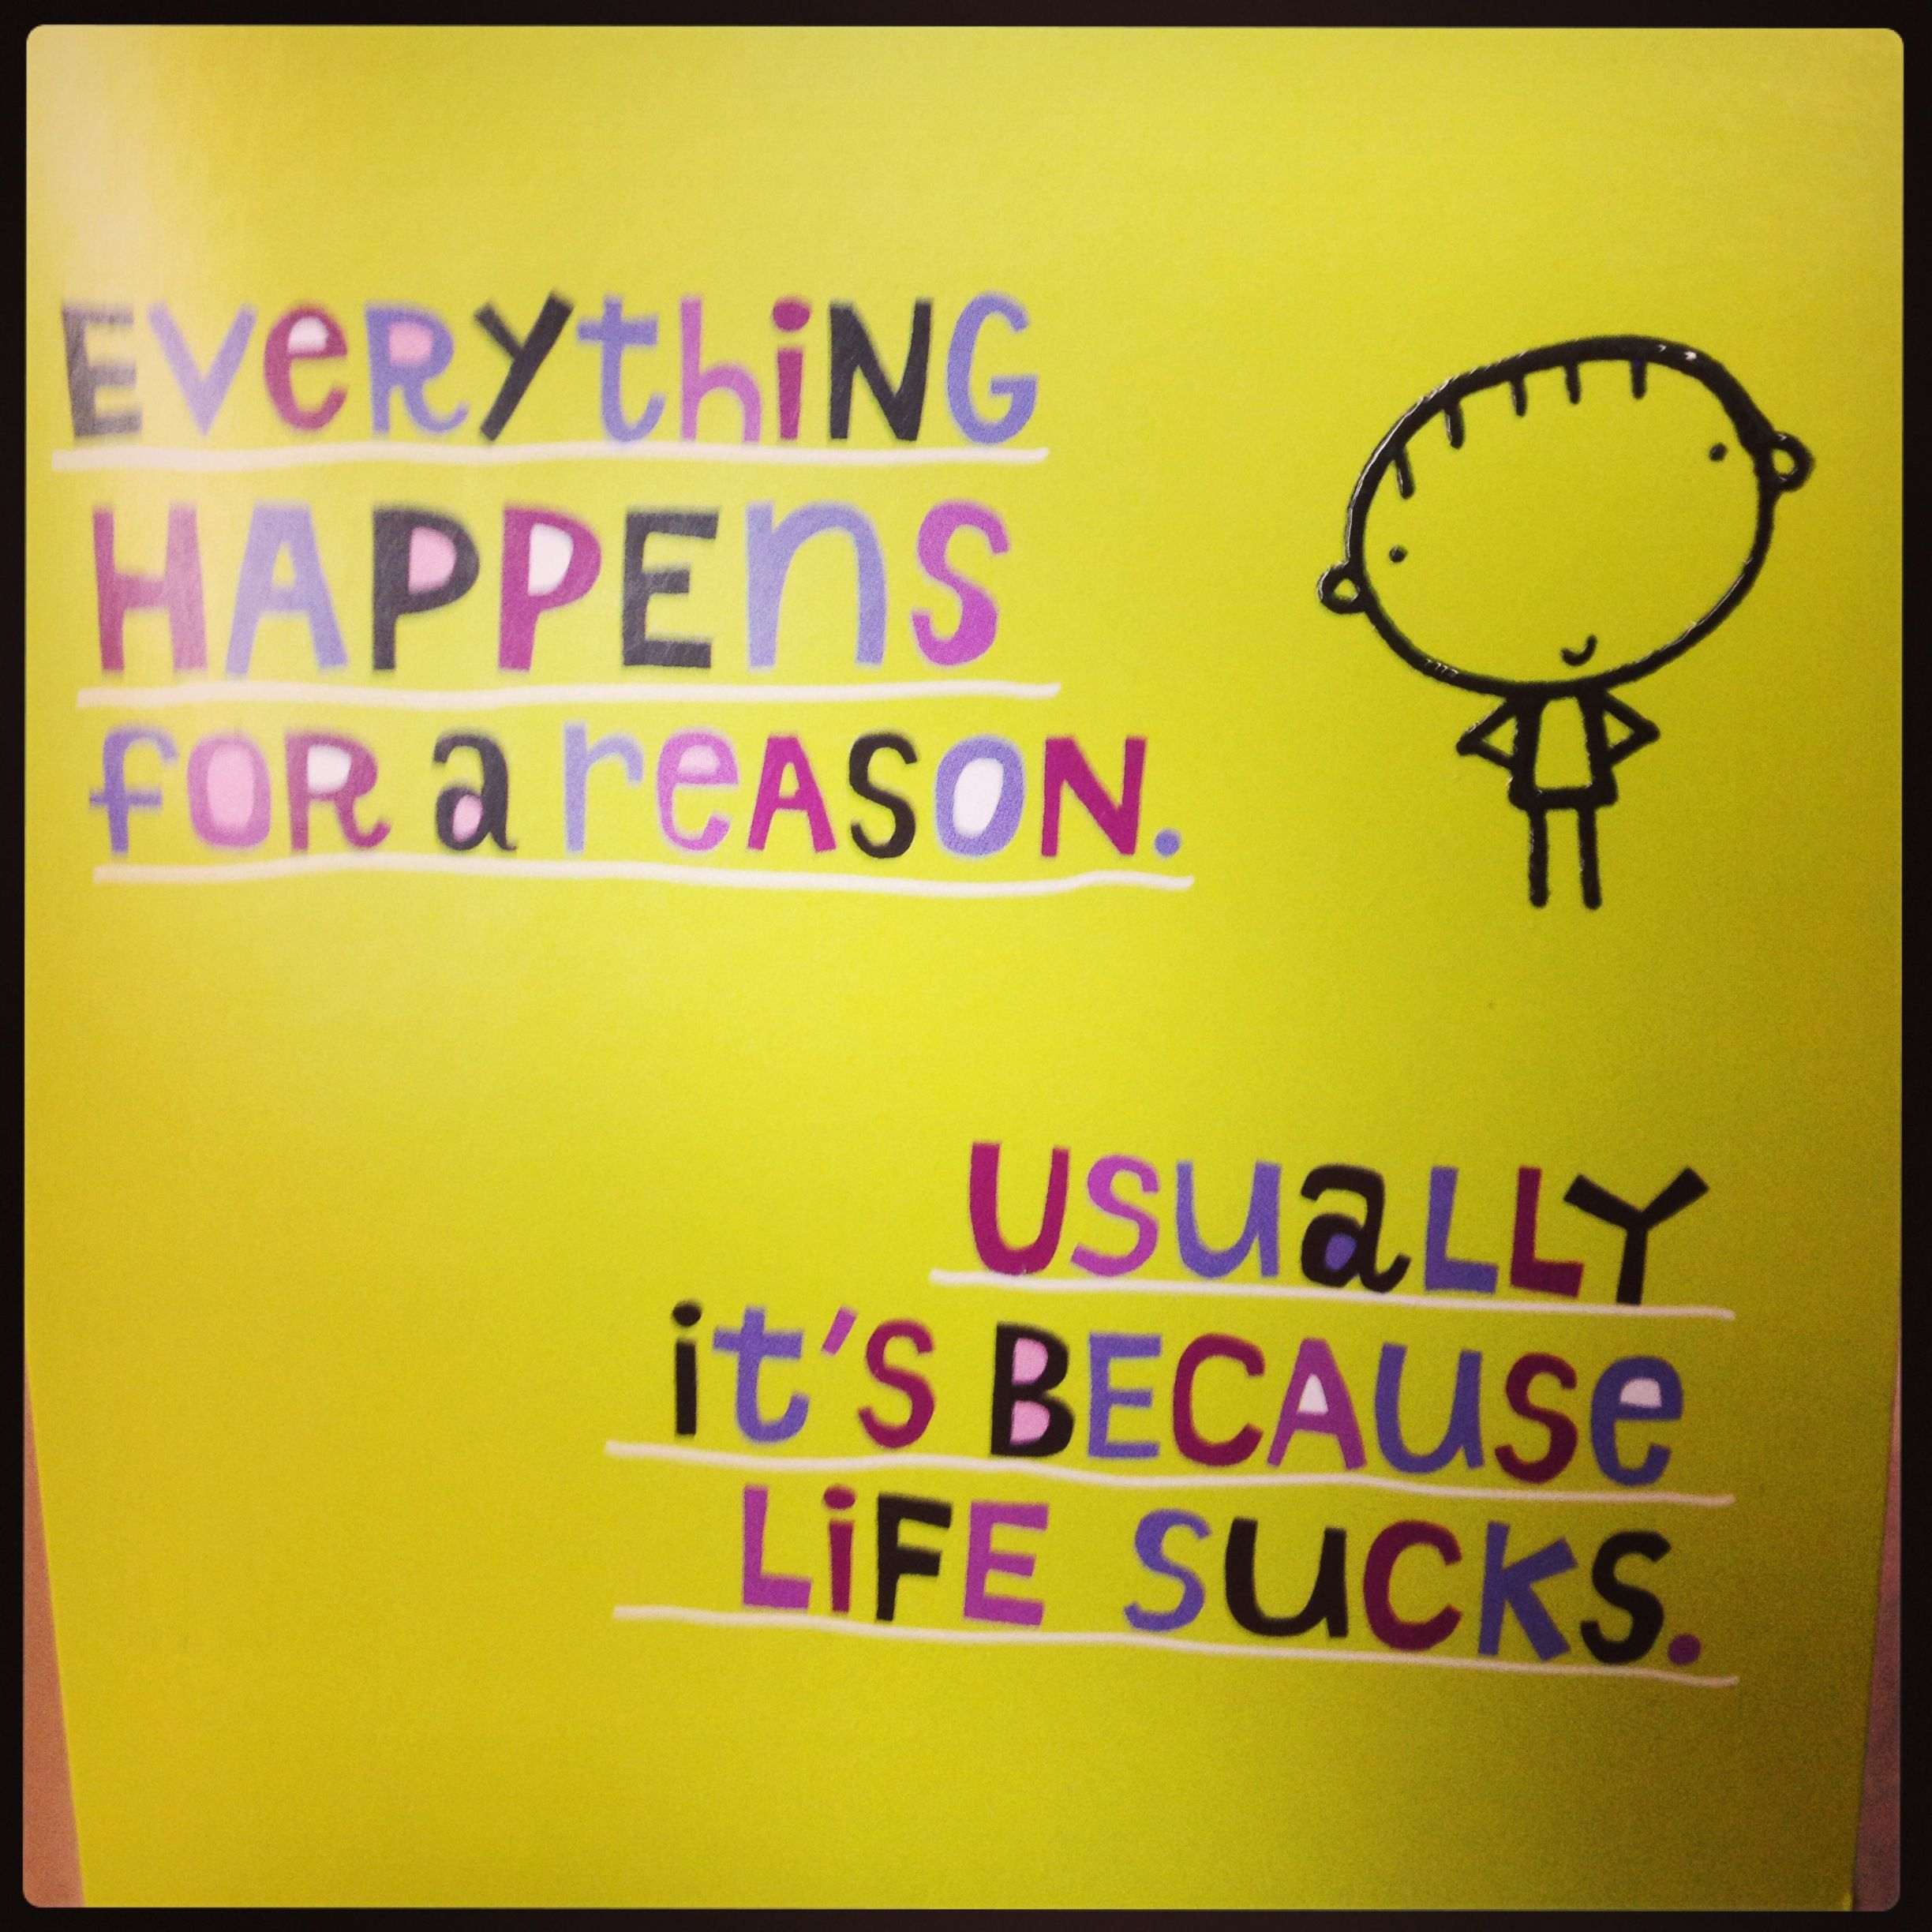 Life Sucks Quotes Everything Happens For A Reasonlife Sucks  Quotes  Pinterest